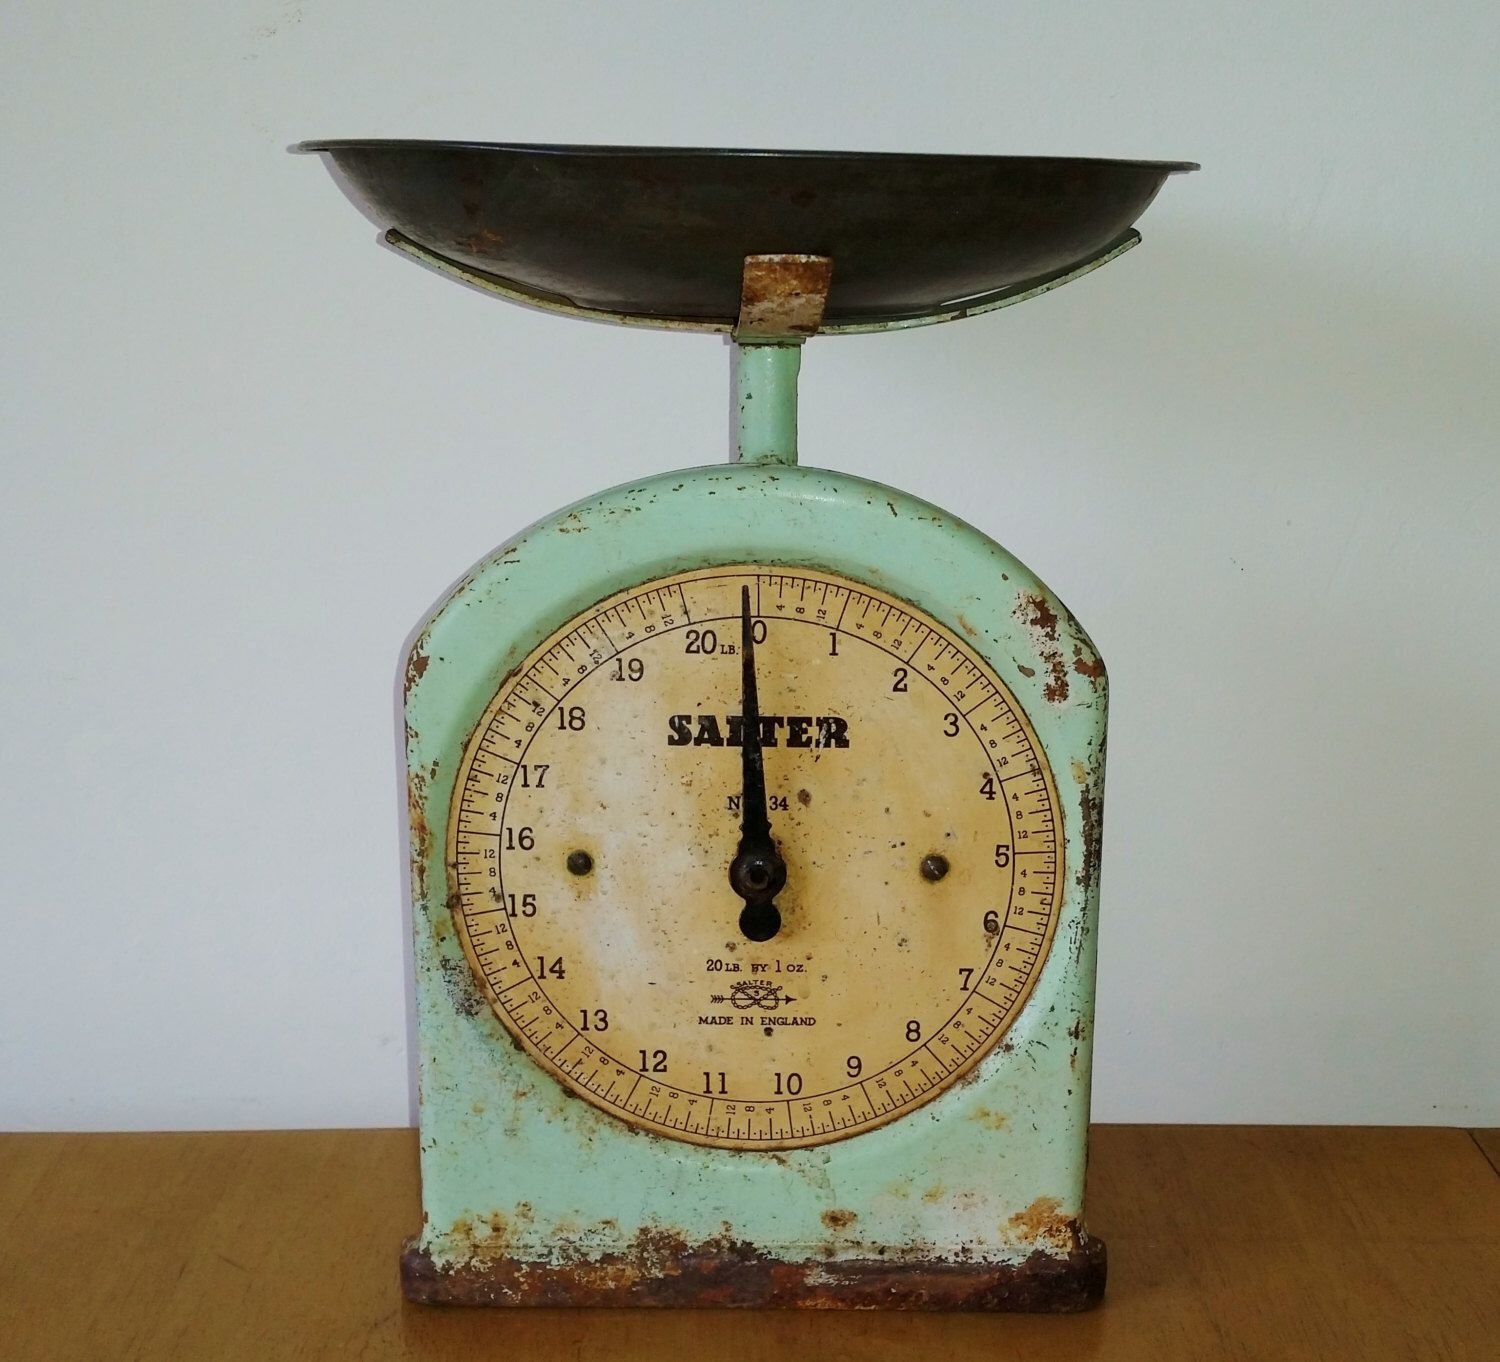 Vintage Kitchen Scales Green Salter Weighing Scale 1940 Made In England 20lb Balance Kitchenalia Shabby Shabby Cottage Vintage Kitchen Shabby Chic Cottage